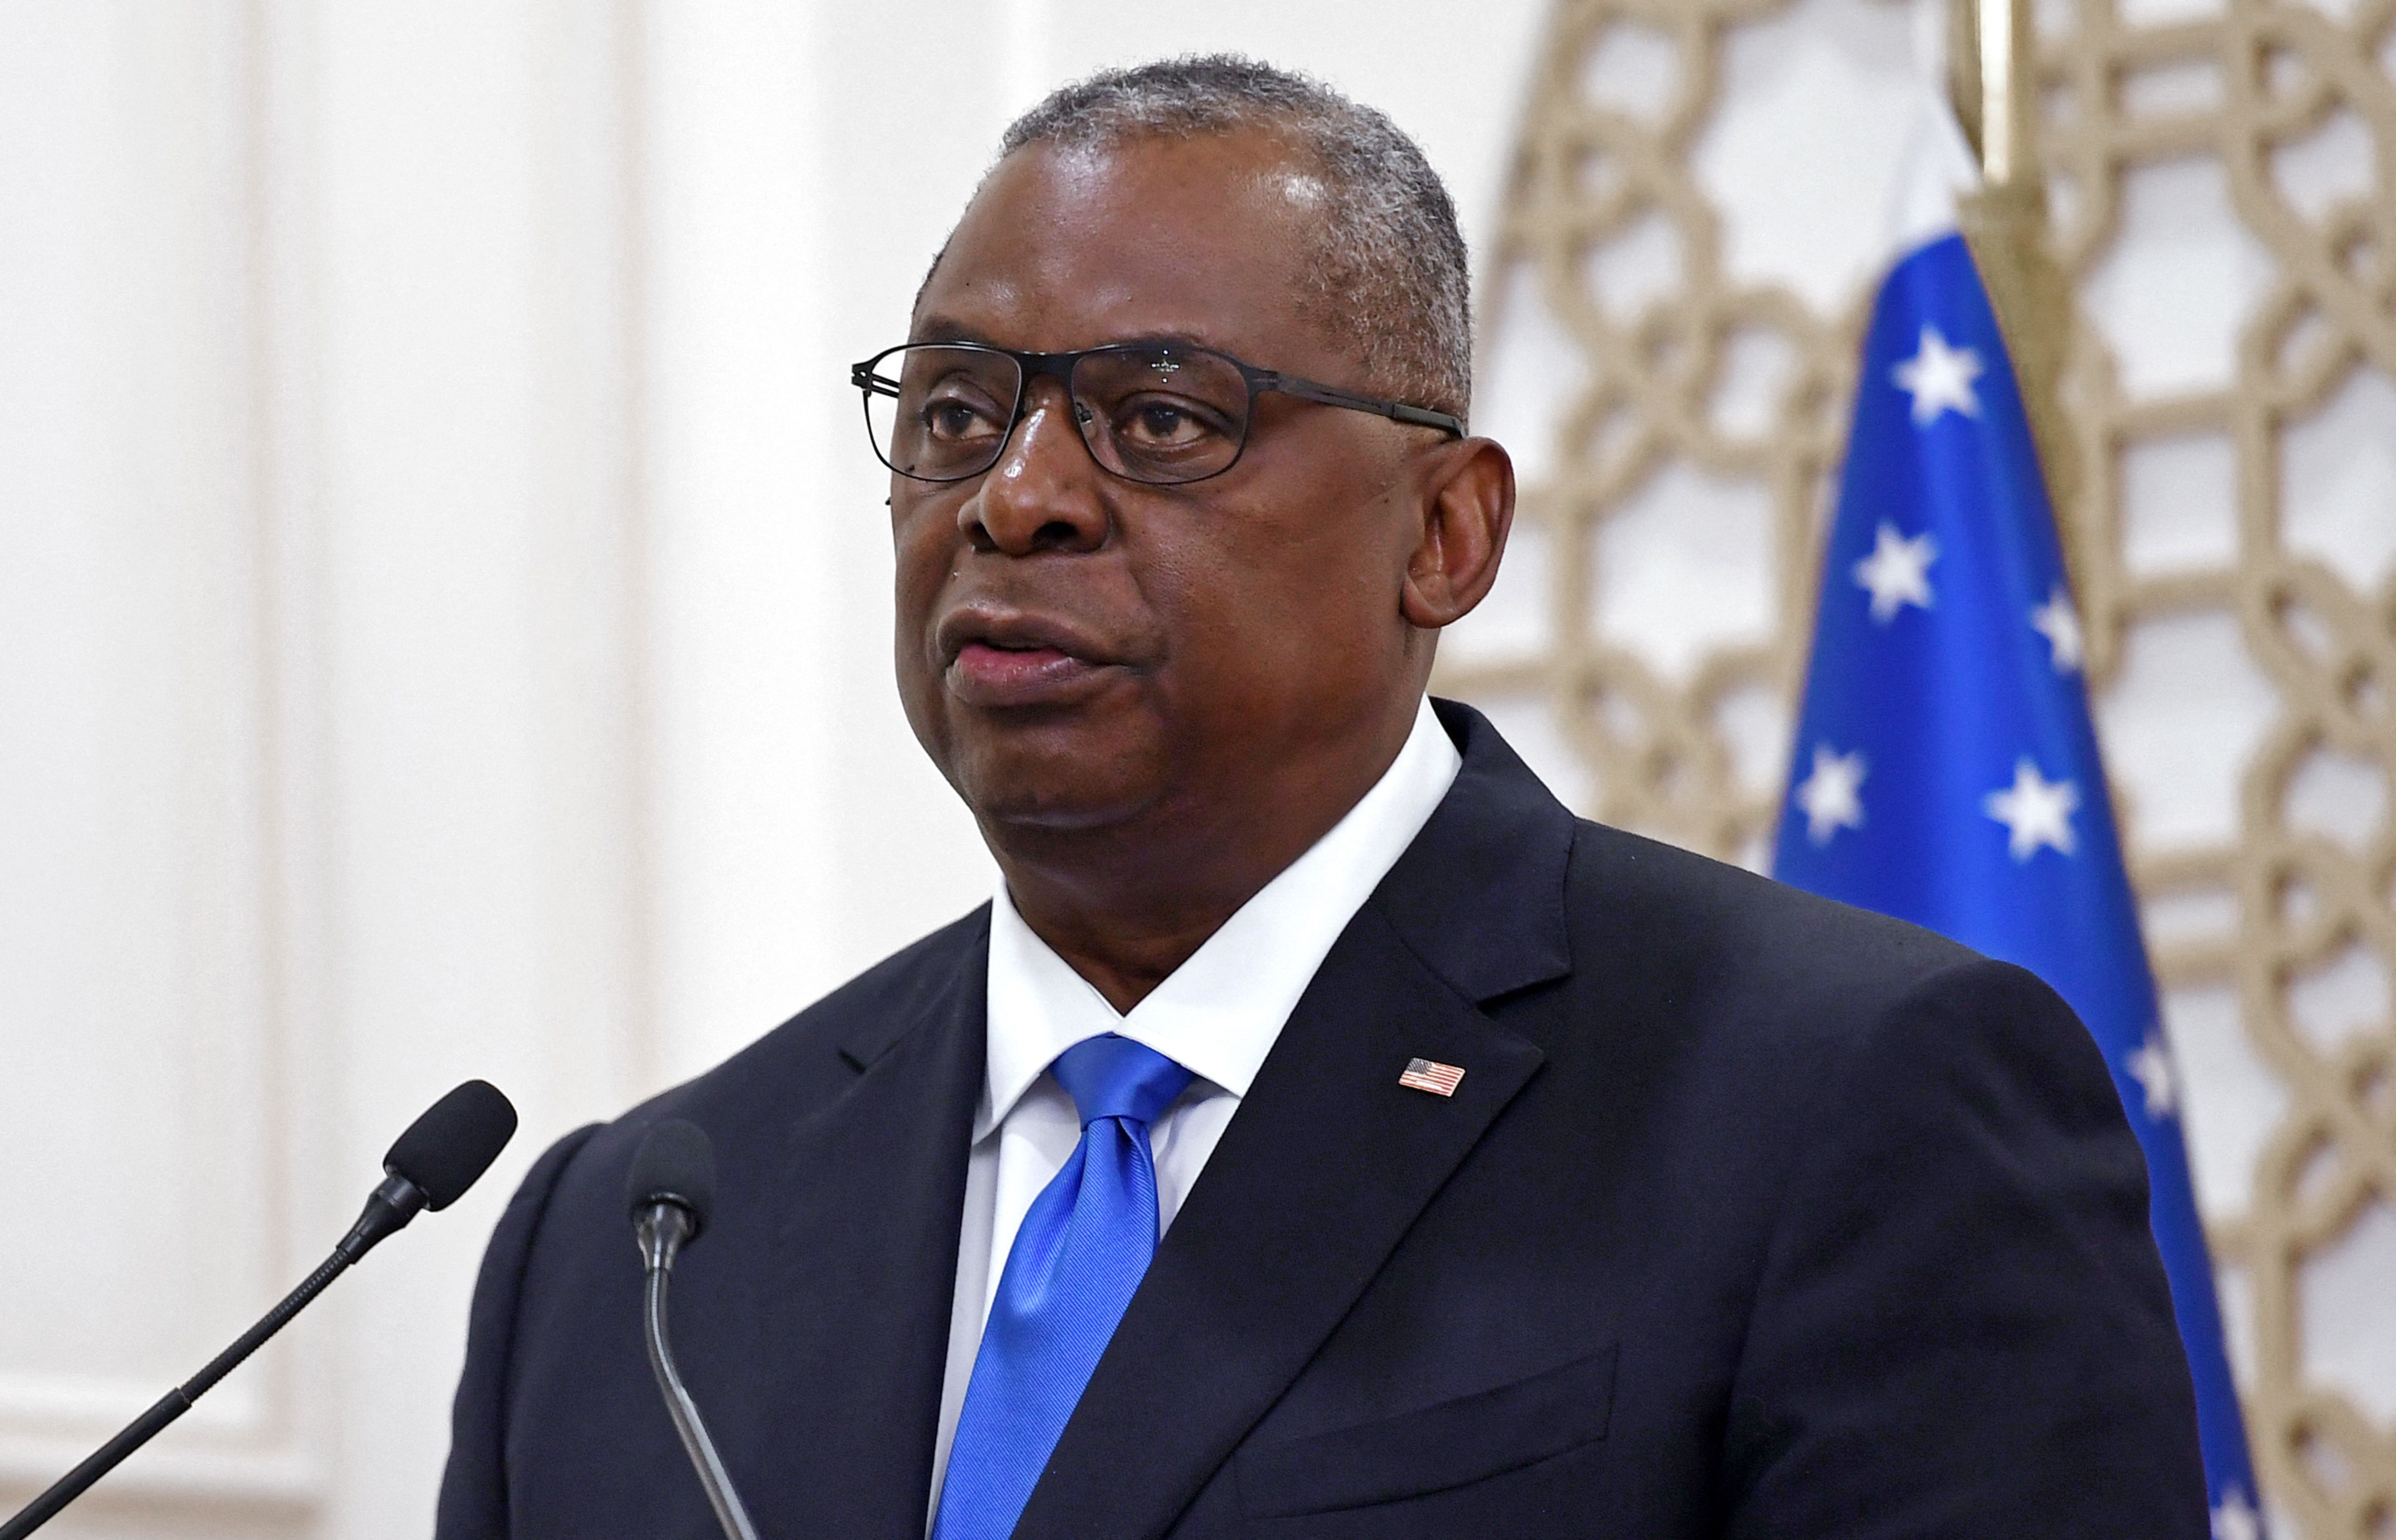 Secretary of Defense Lloyd Austin speaks during a joint press conference at the Ministry of Foreign Affairs in the Qatari capital Doha. (Photo by OLIVIER DOULIERY/POOL/AFP via Getty Images)